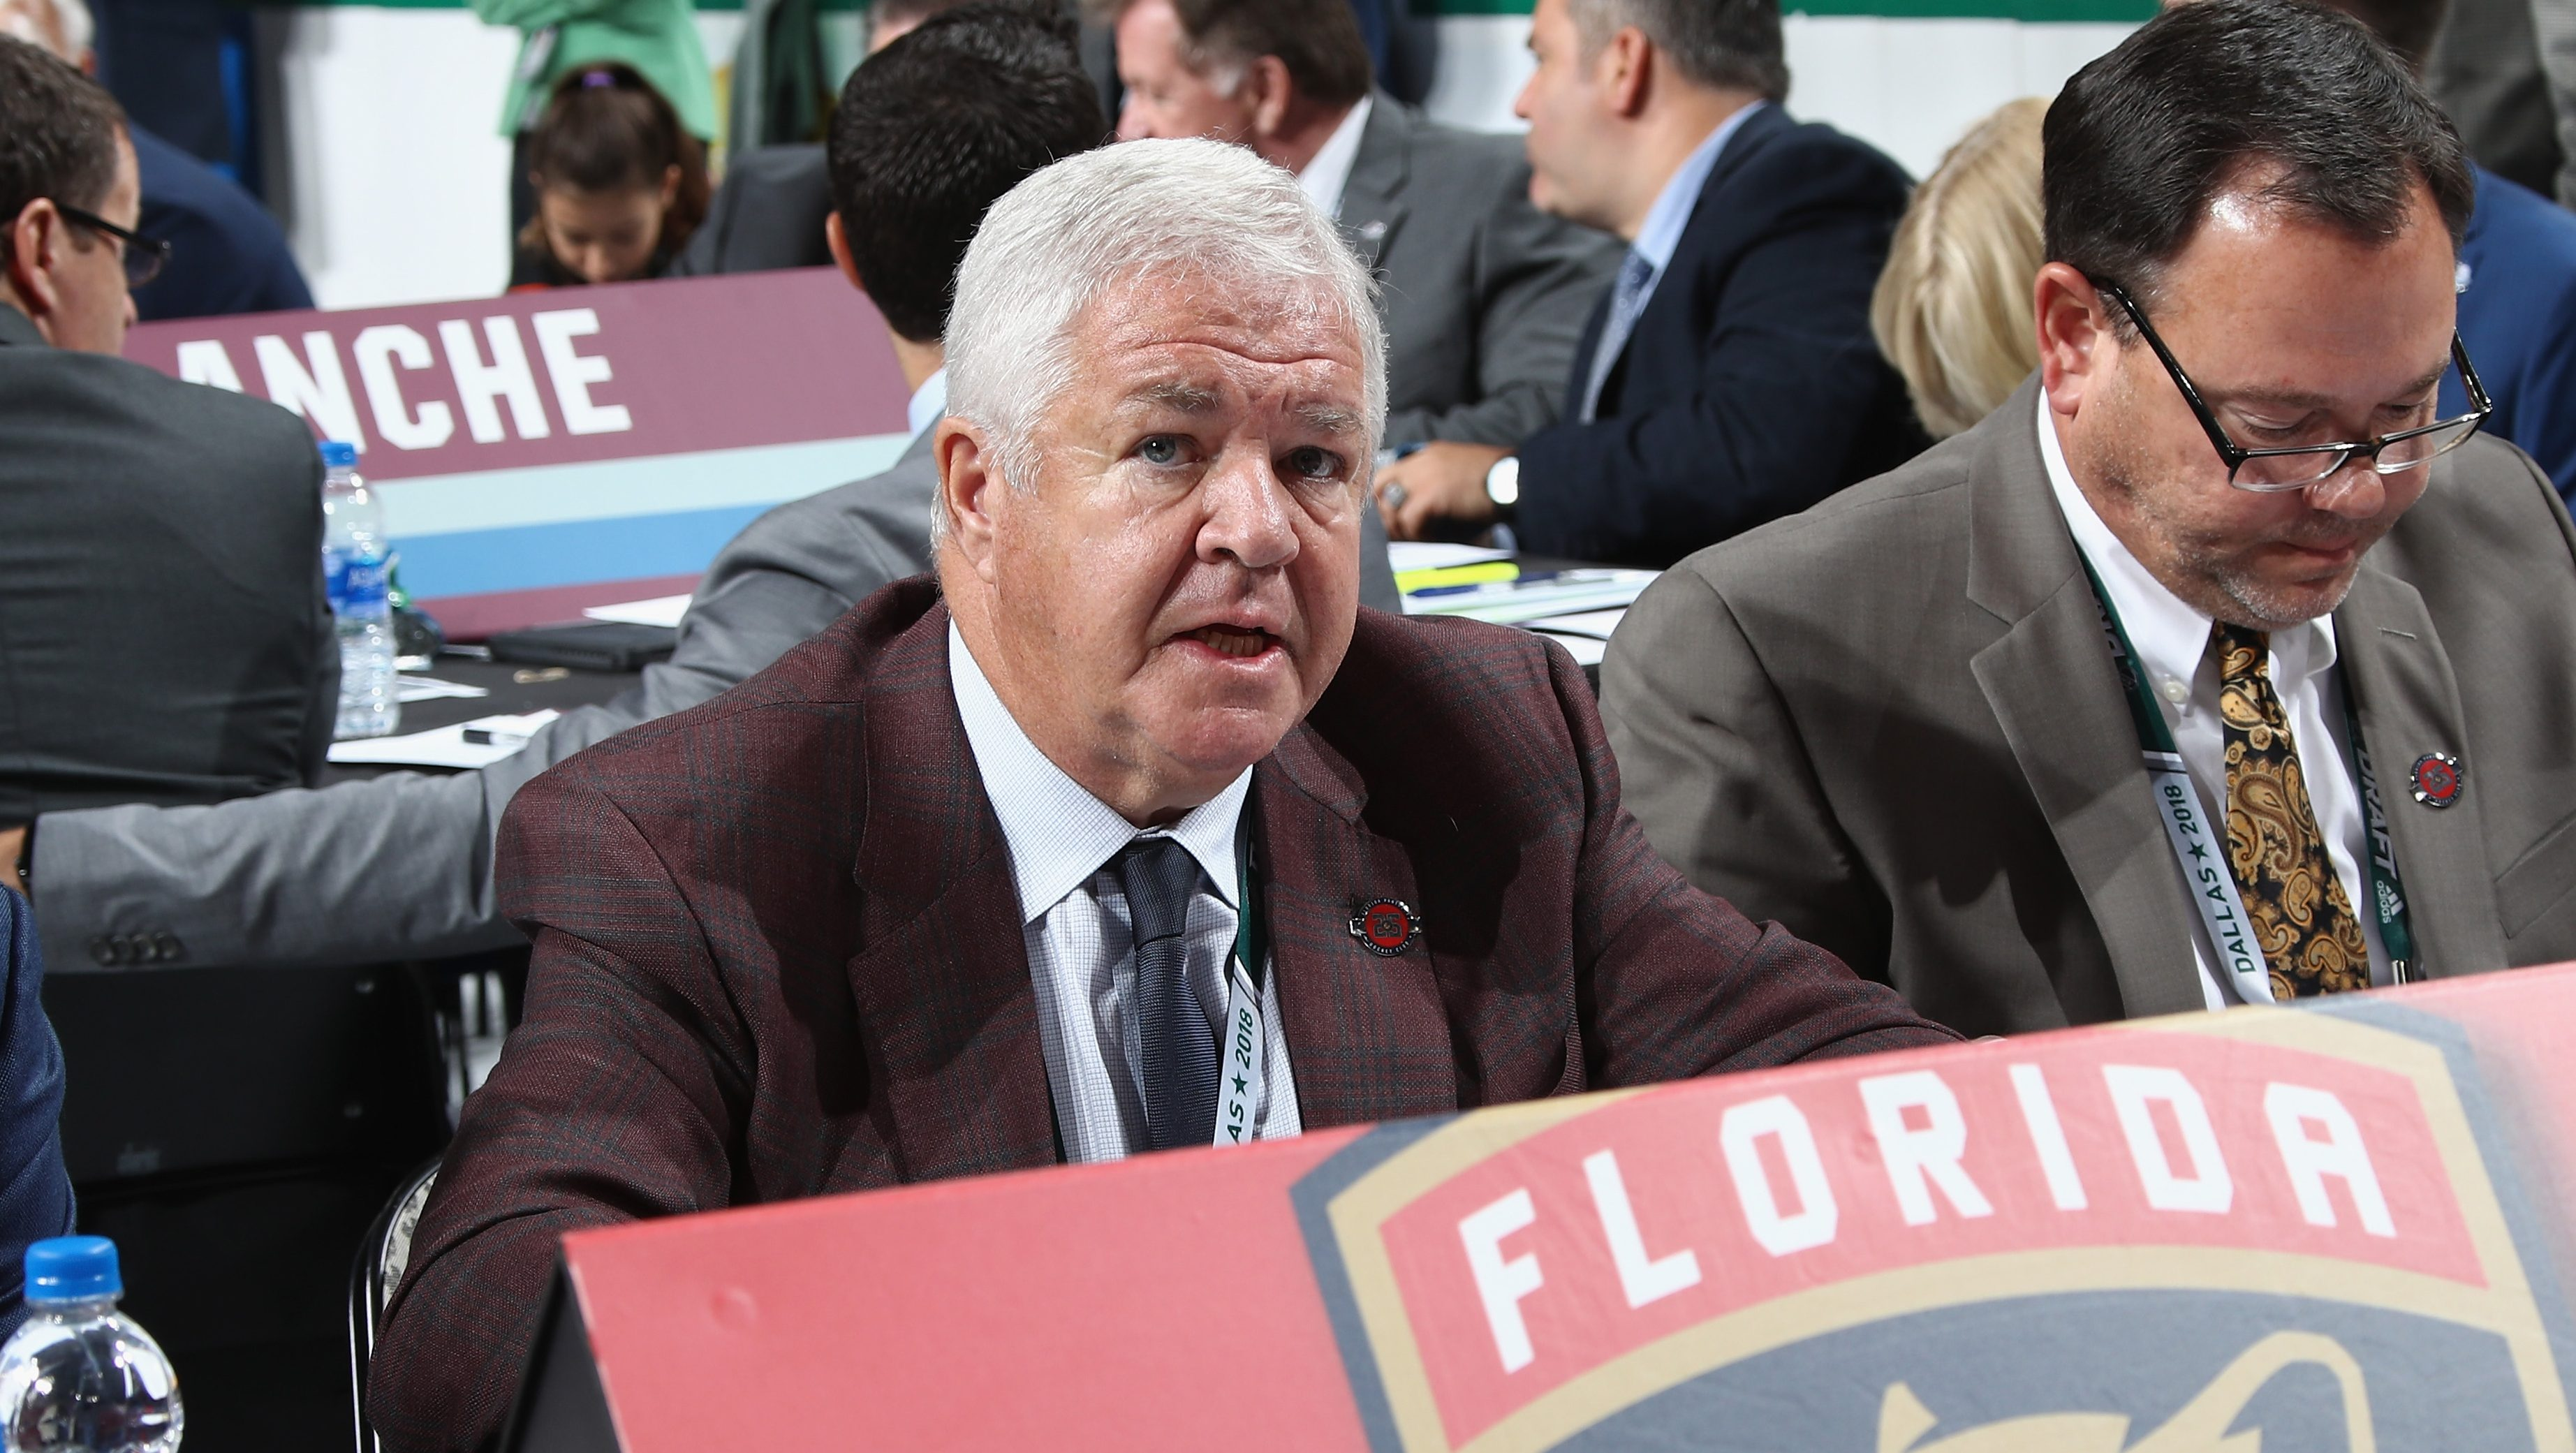 NHL clears ex-Panthers GM of wrongdoing after investigation